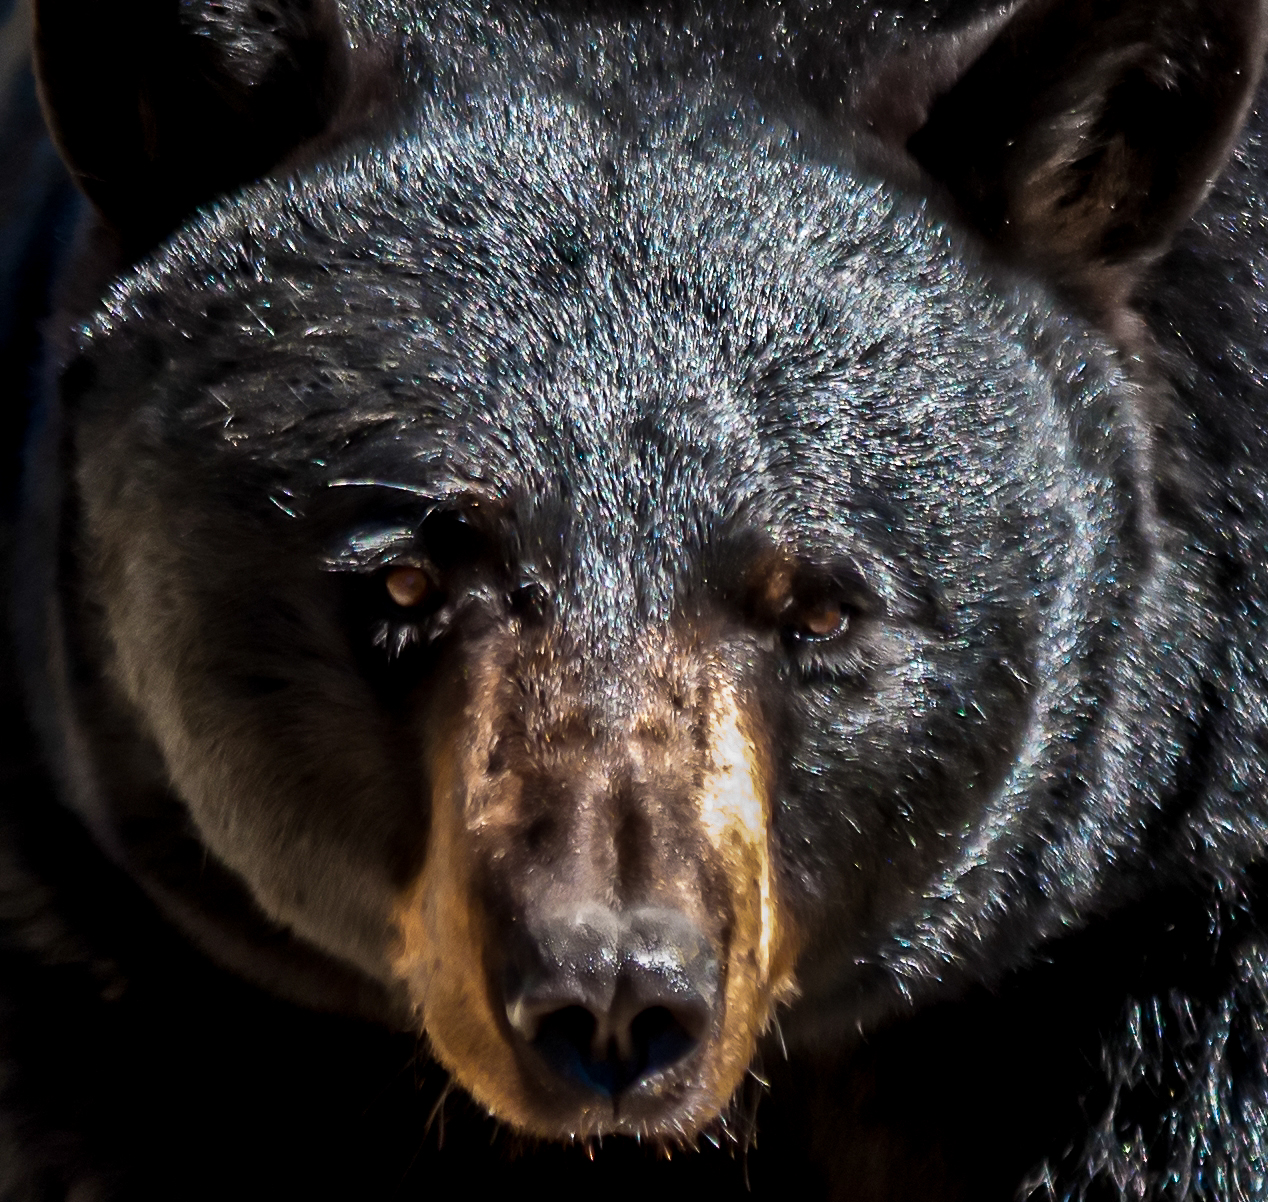 American black bear male adult, Adorable, Nose, Kill, Killer, HQ Photo